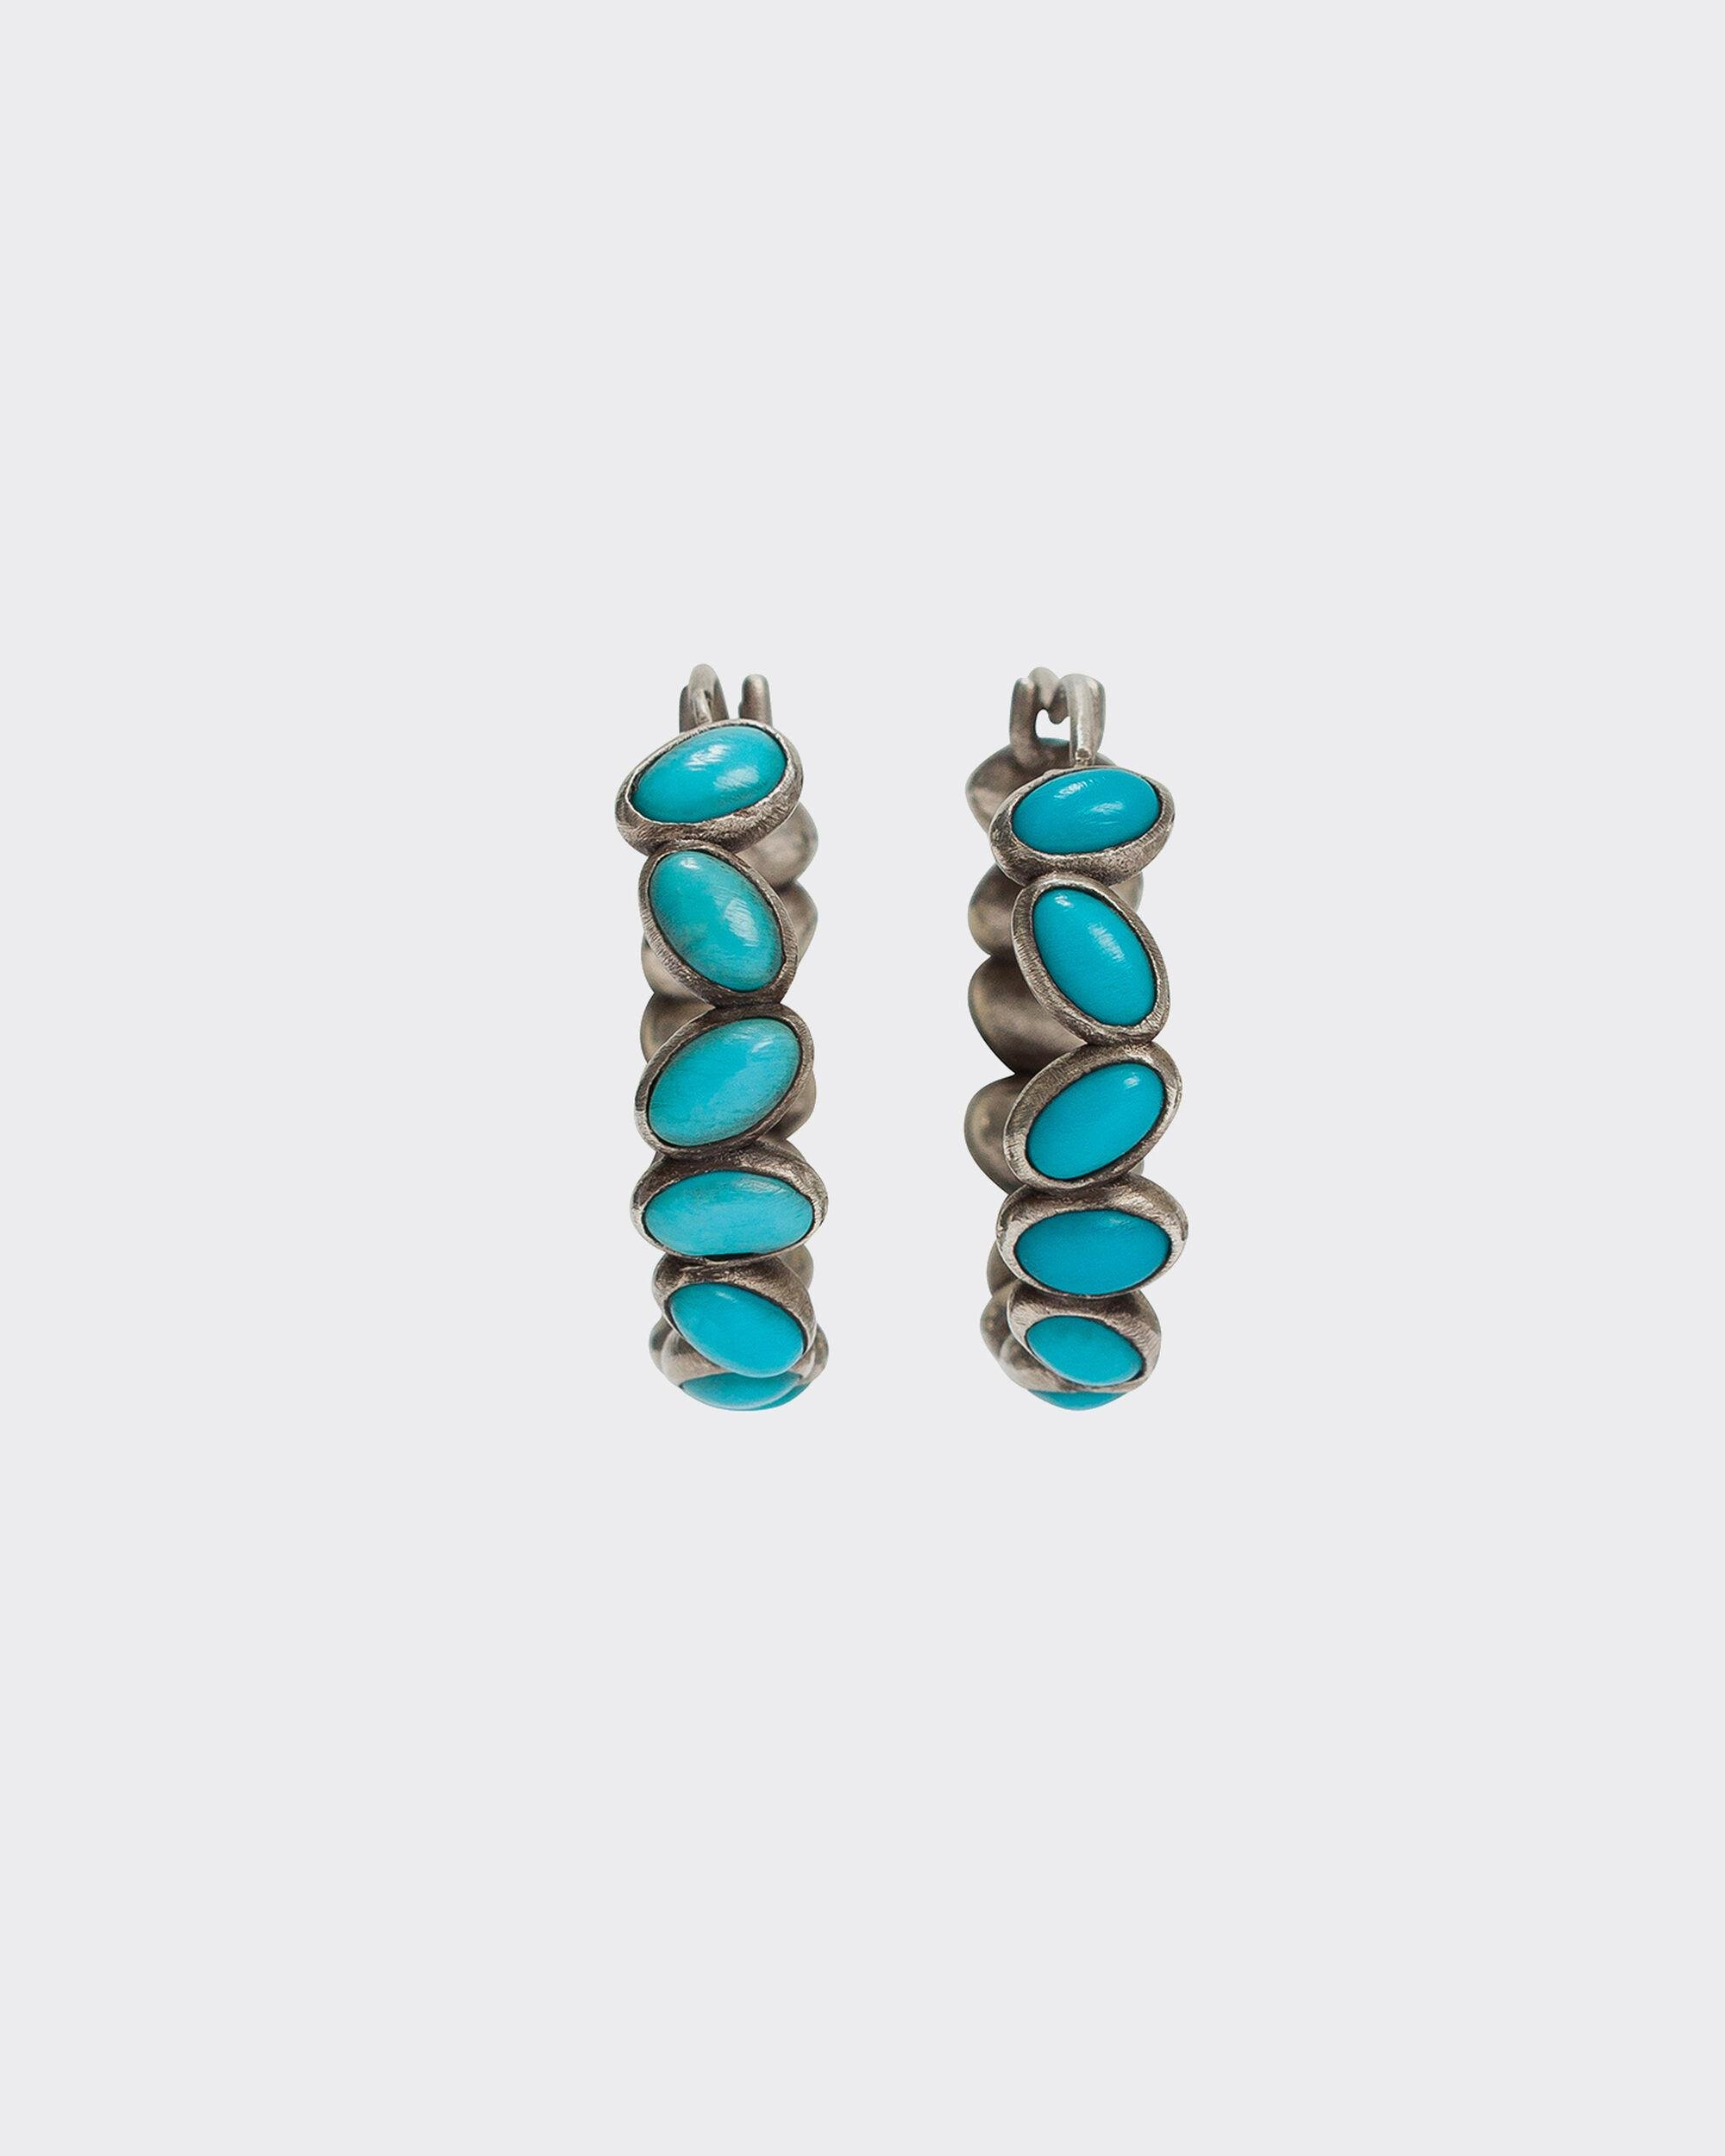 CANNA SILVER AND TURQUOISE BEAD EARRINGS